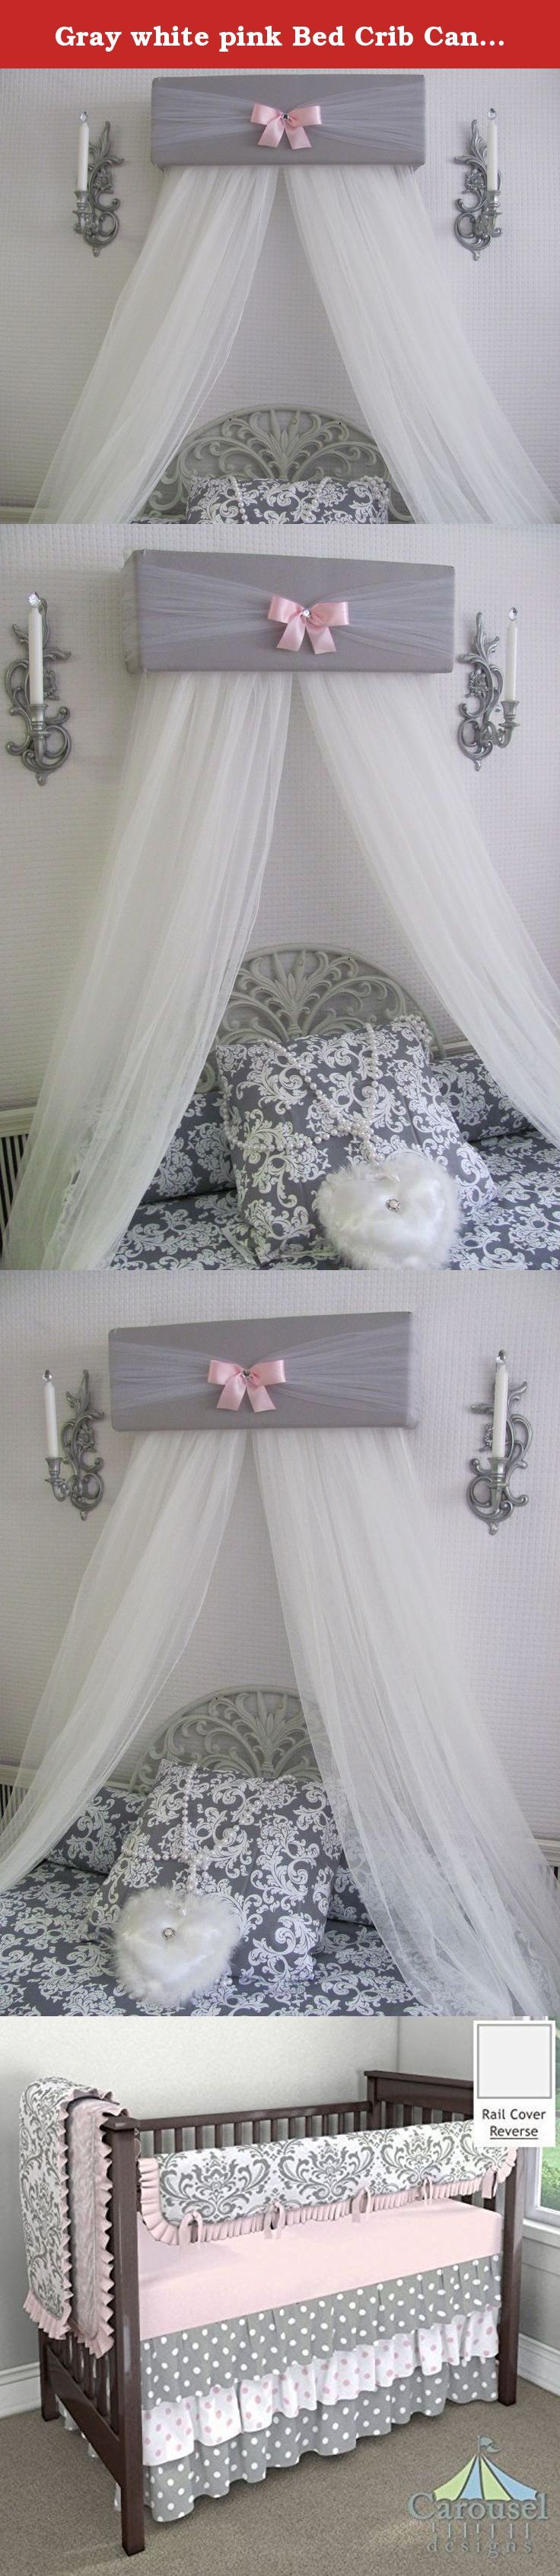 Crib for sale davao - Gray White Pink Bed Crib Canopy Free White Curtains Custom Made Sale So Zoey Boutique Designs